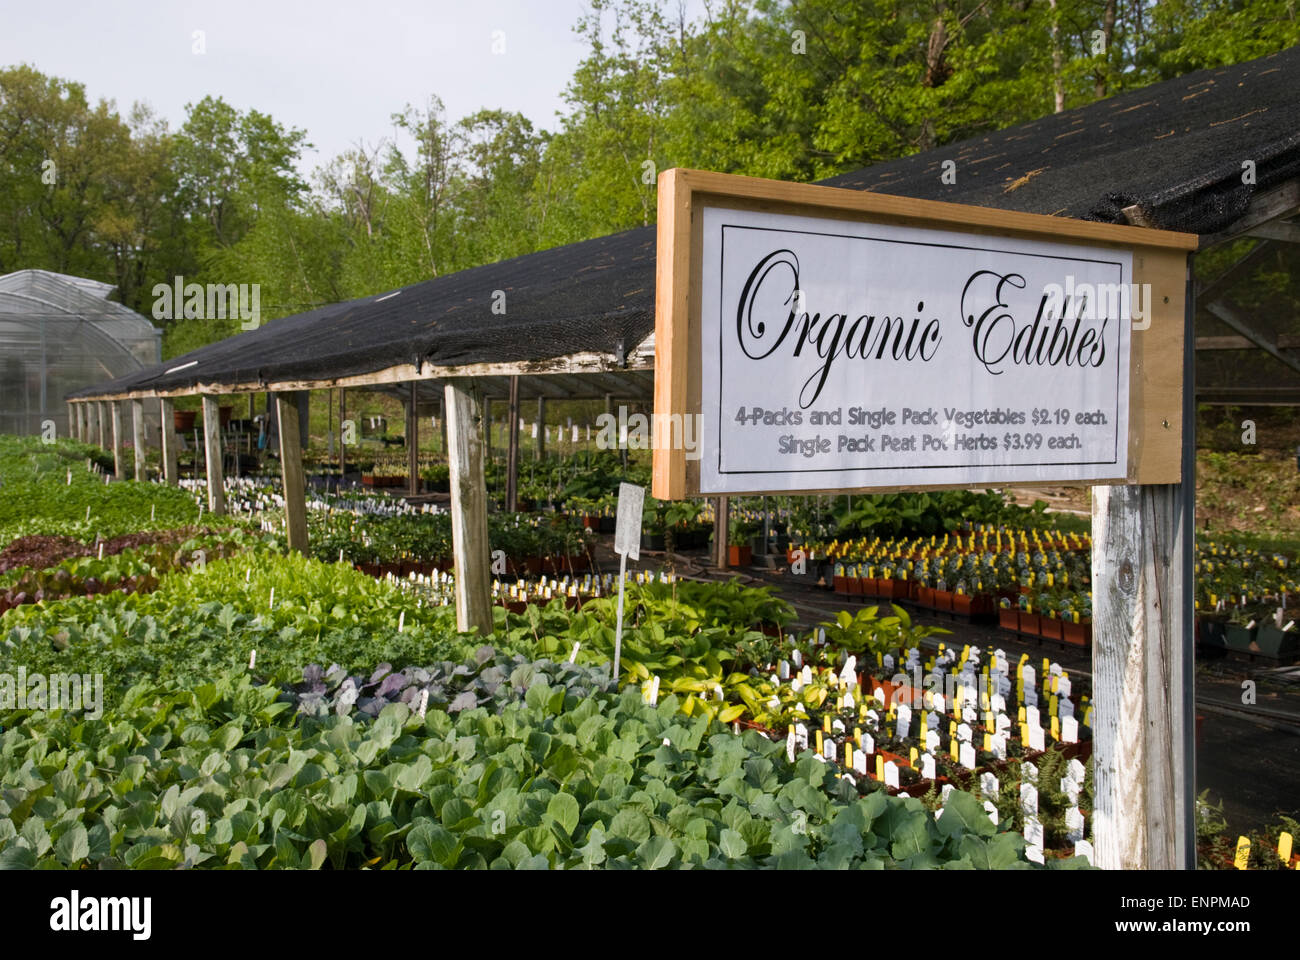 Organic herbs and vegetables plants for sale at a nursery in New York State - Stock Image